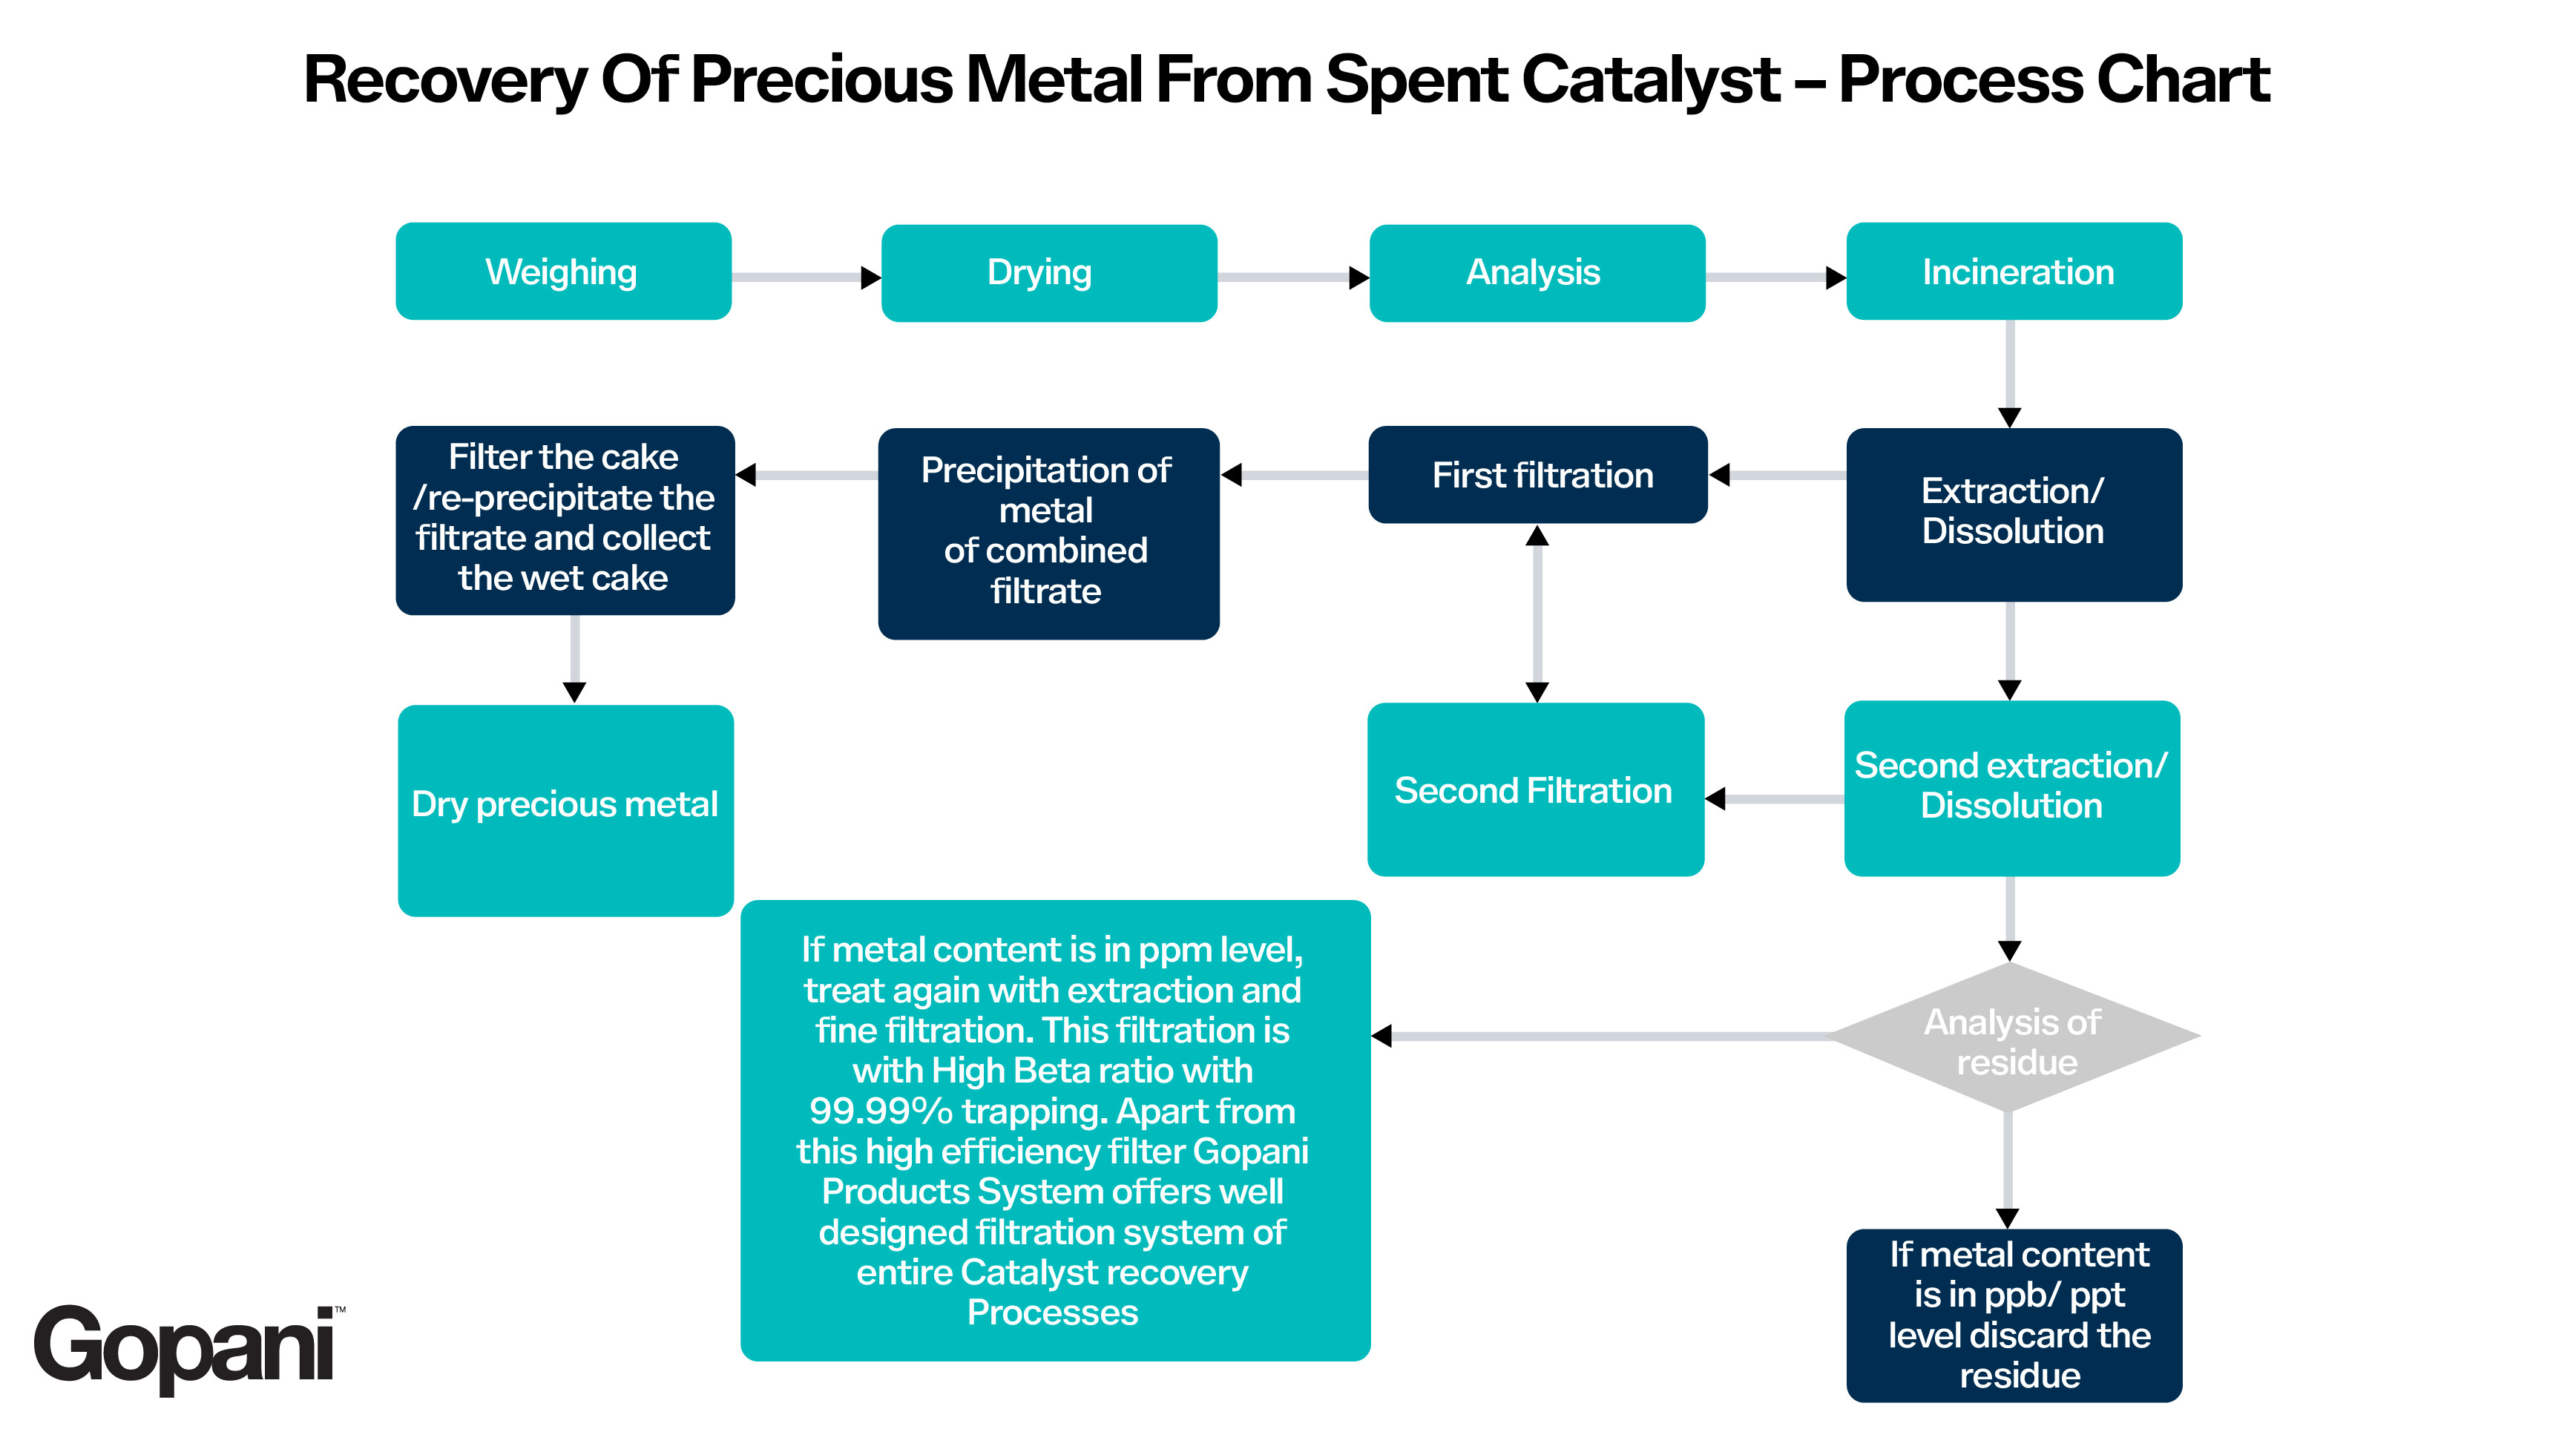 Here's a detailed flowchart that shows the entire cycle - Gopani Product Systems